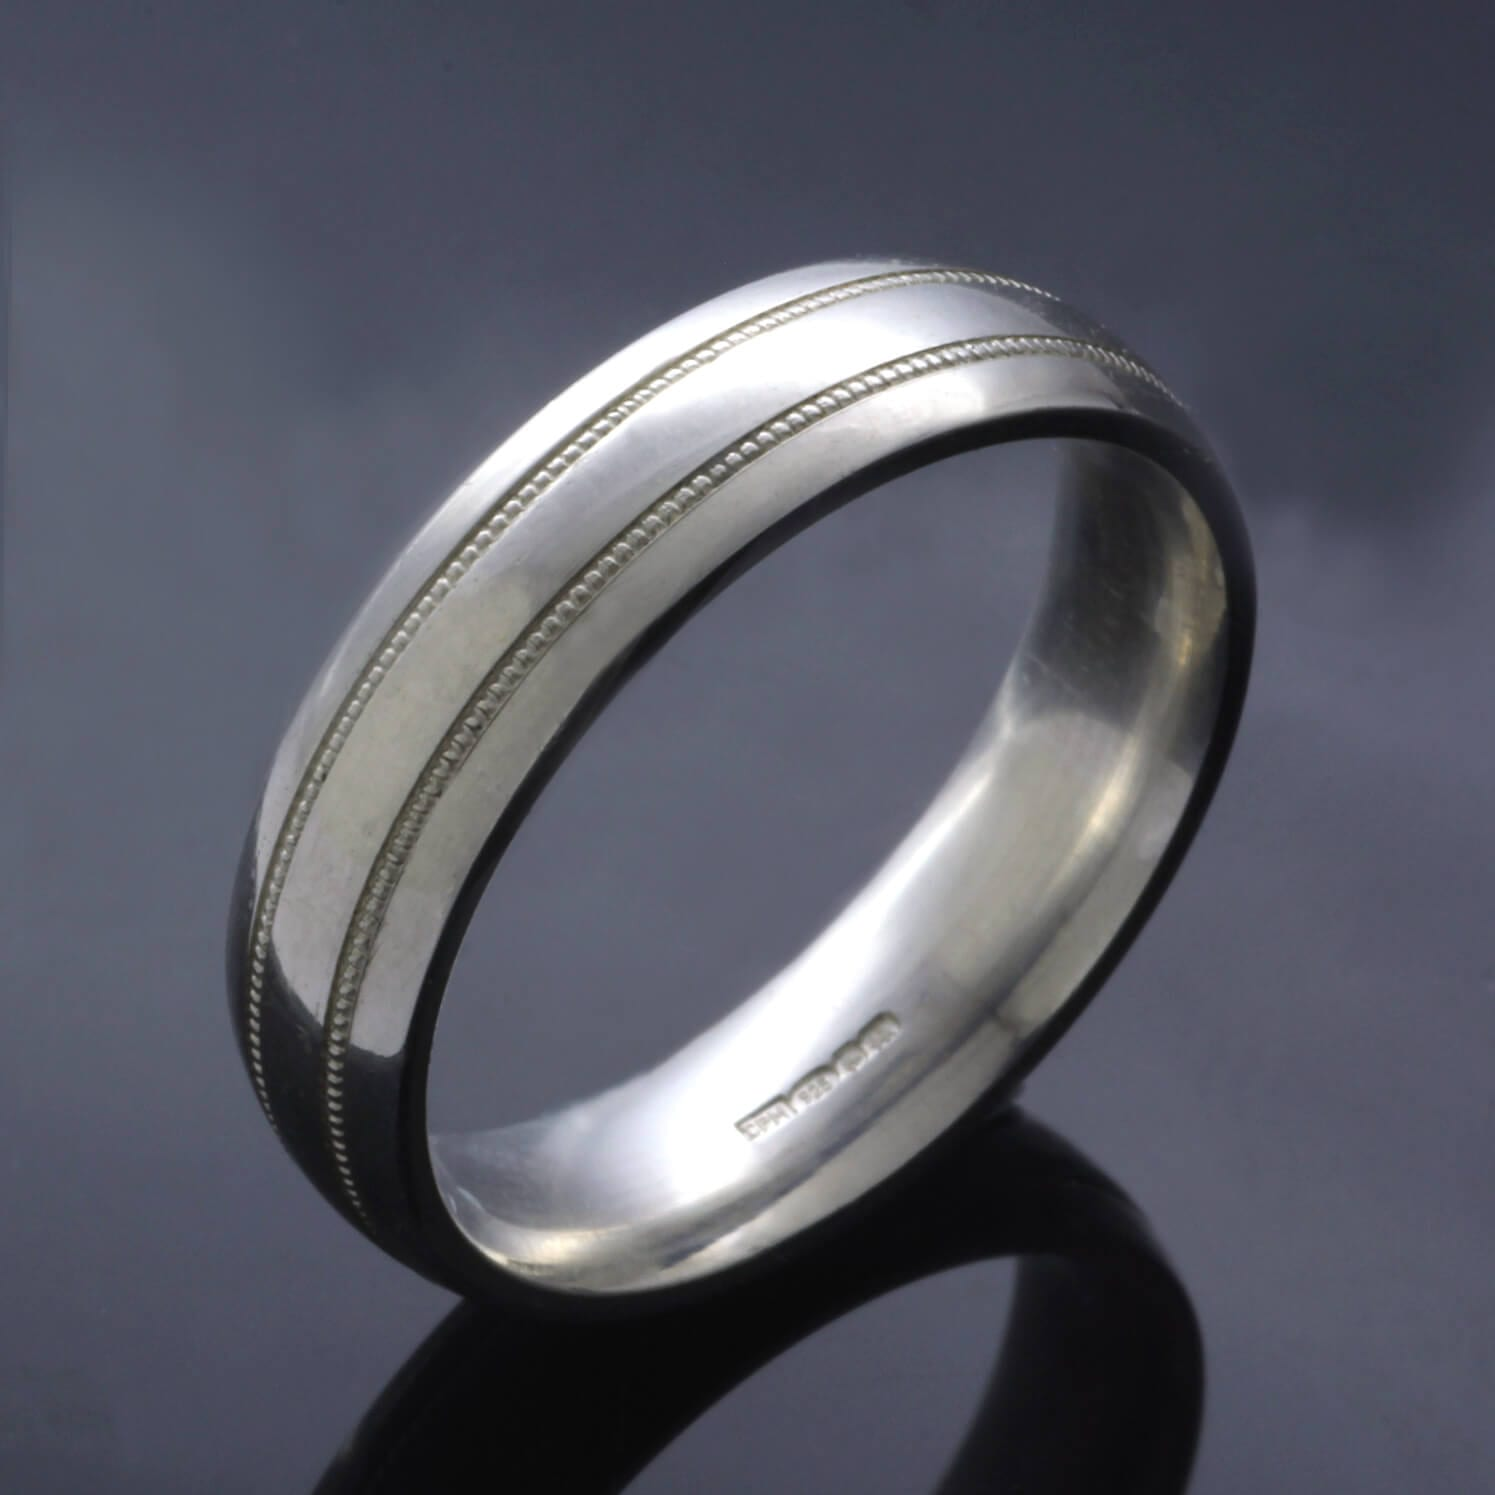 Bespoke mens wedding ring design by Julian Stephens Goldsmith